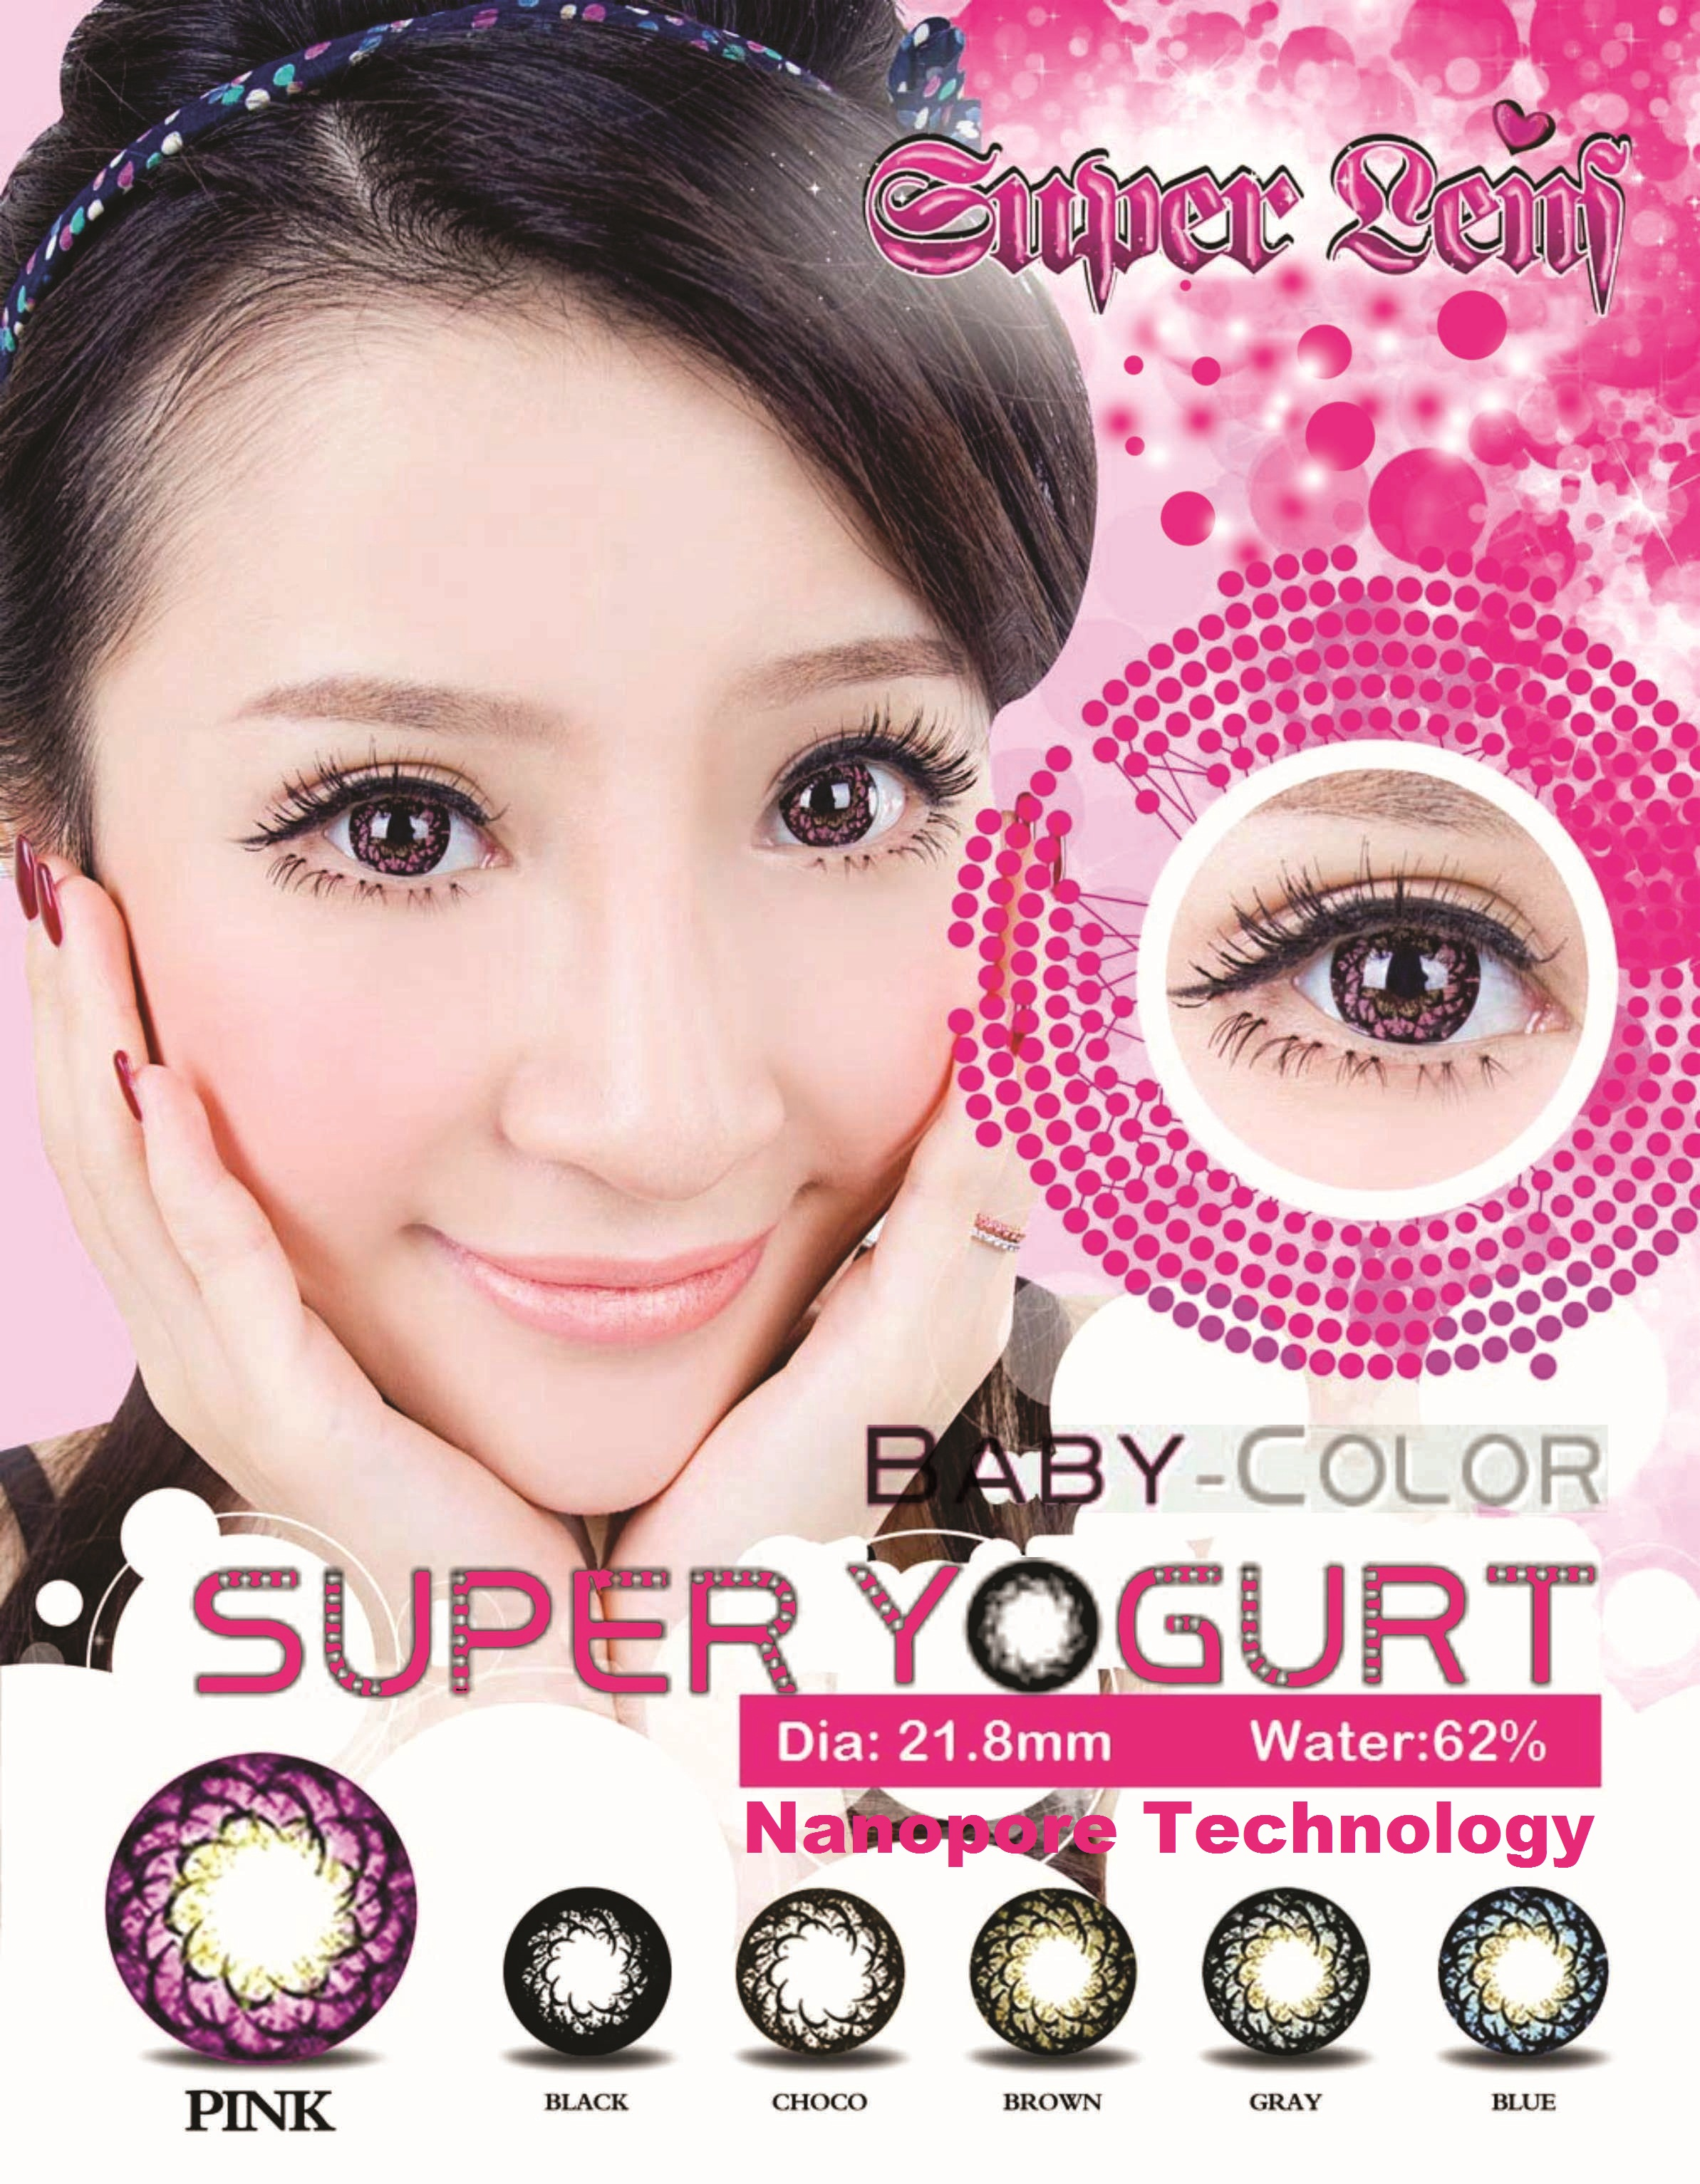 Baby-Color-Super-Yogurt-Pink-21.8mm